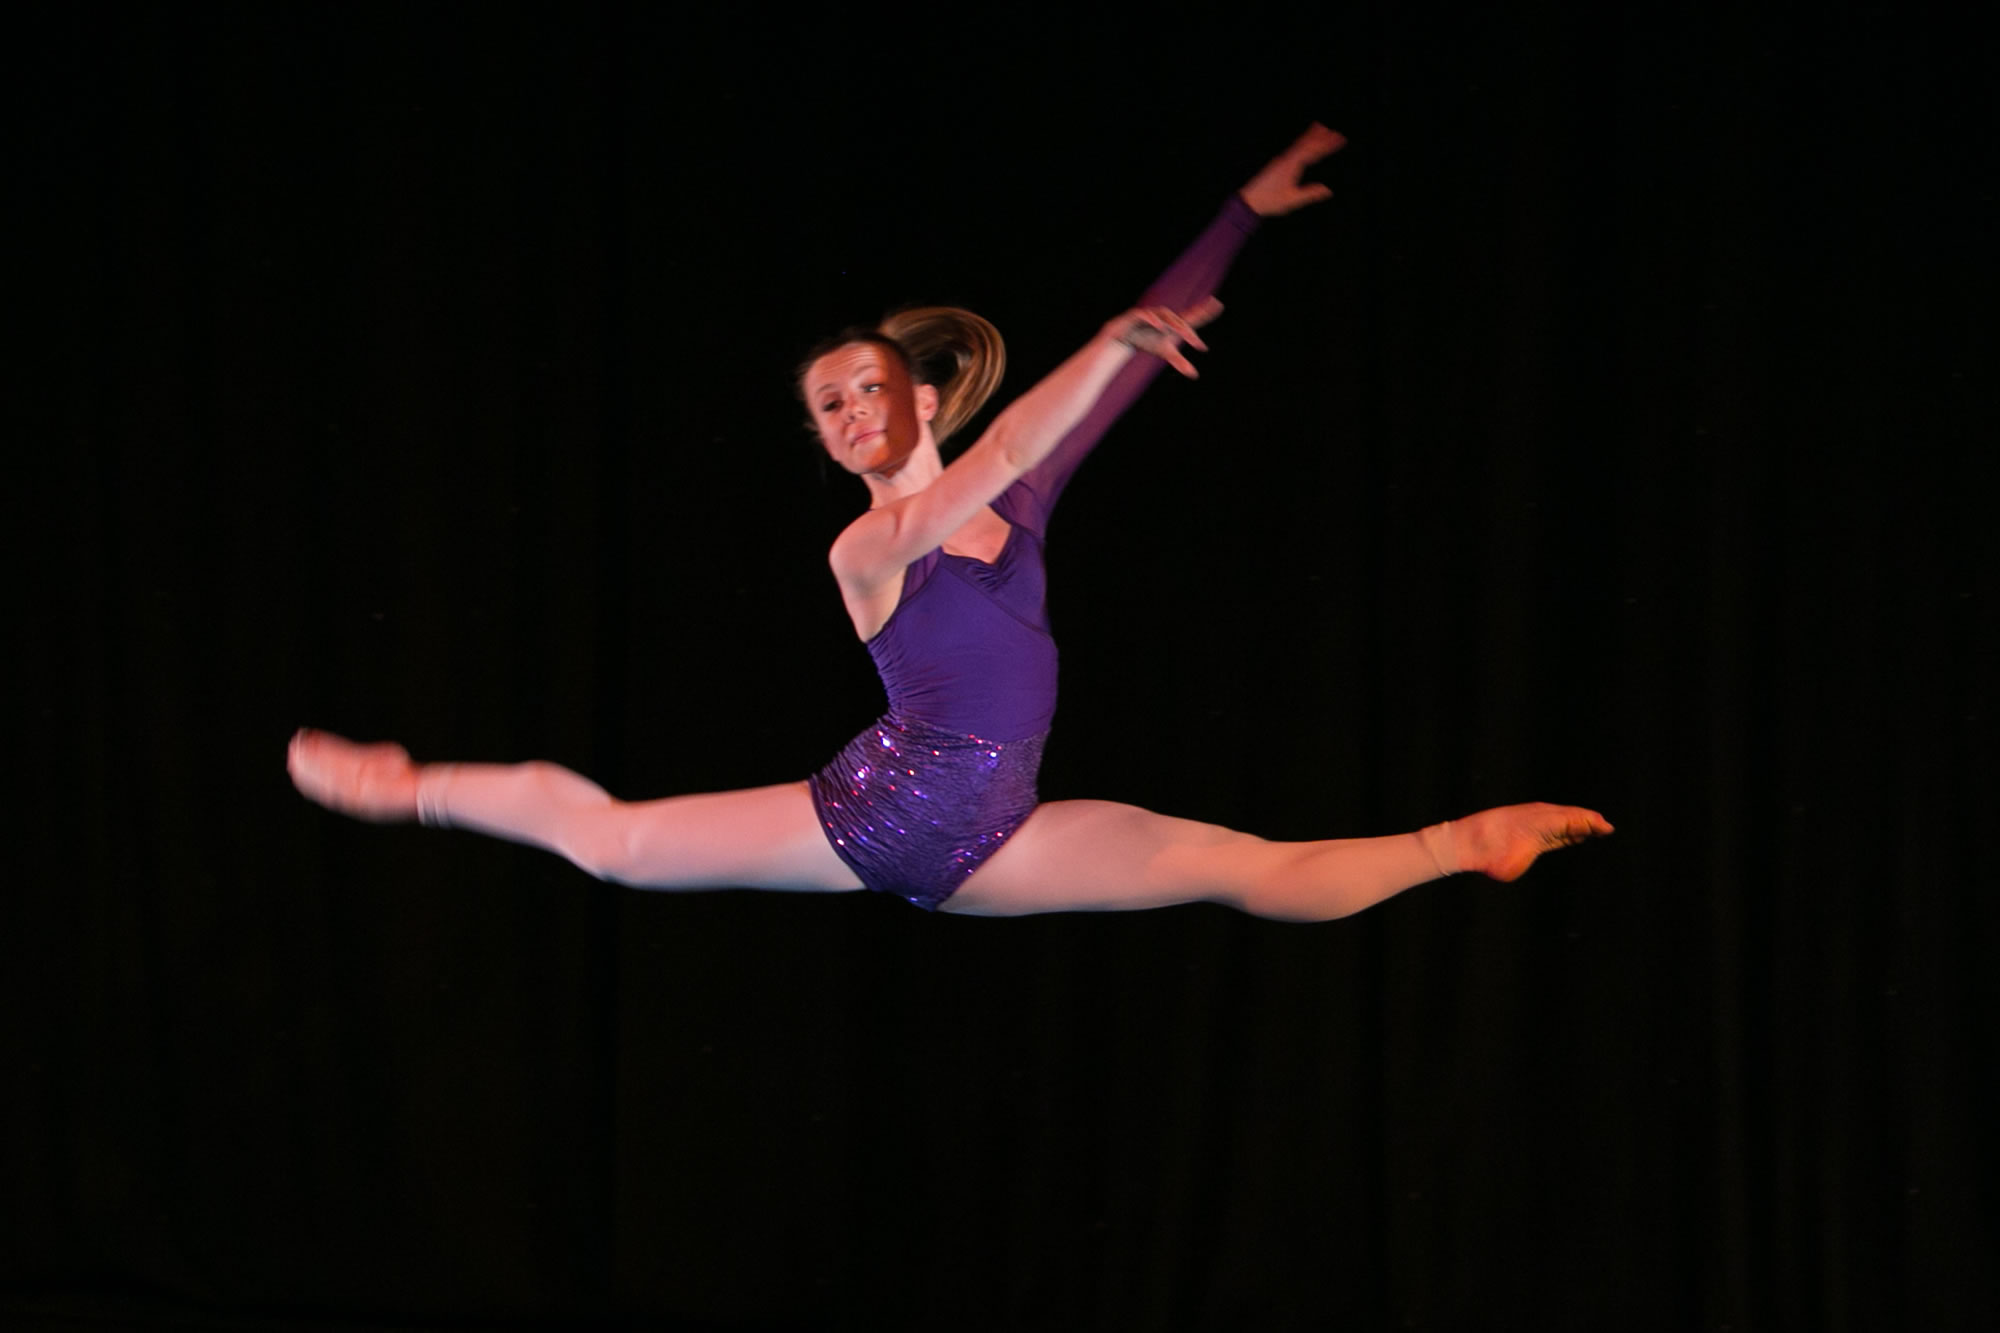 Hitchin_School_of_Dance_Show_2019-SM1_1866.jpg